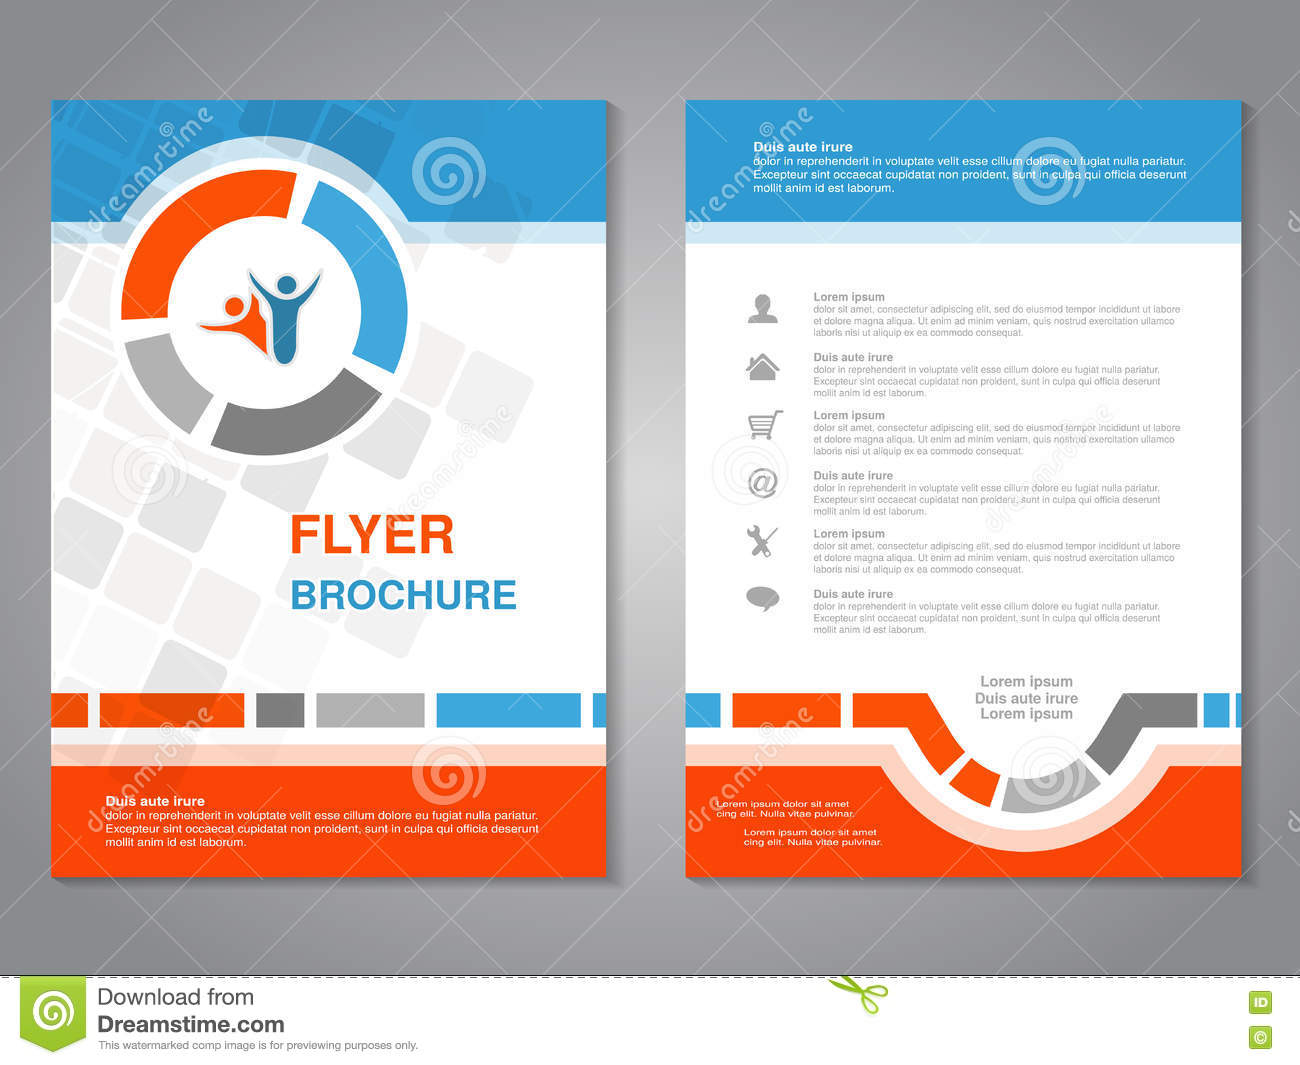 Poster design layout templates - Modern Brochure Abstract Flyer With Simple Squared Design Layout Template Aspect Ratio For